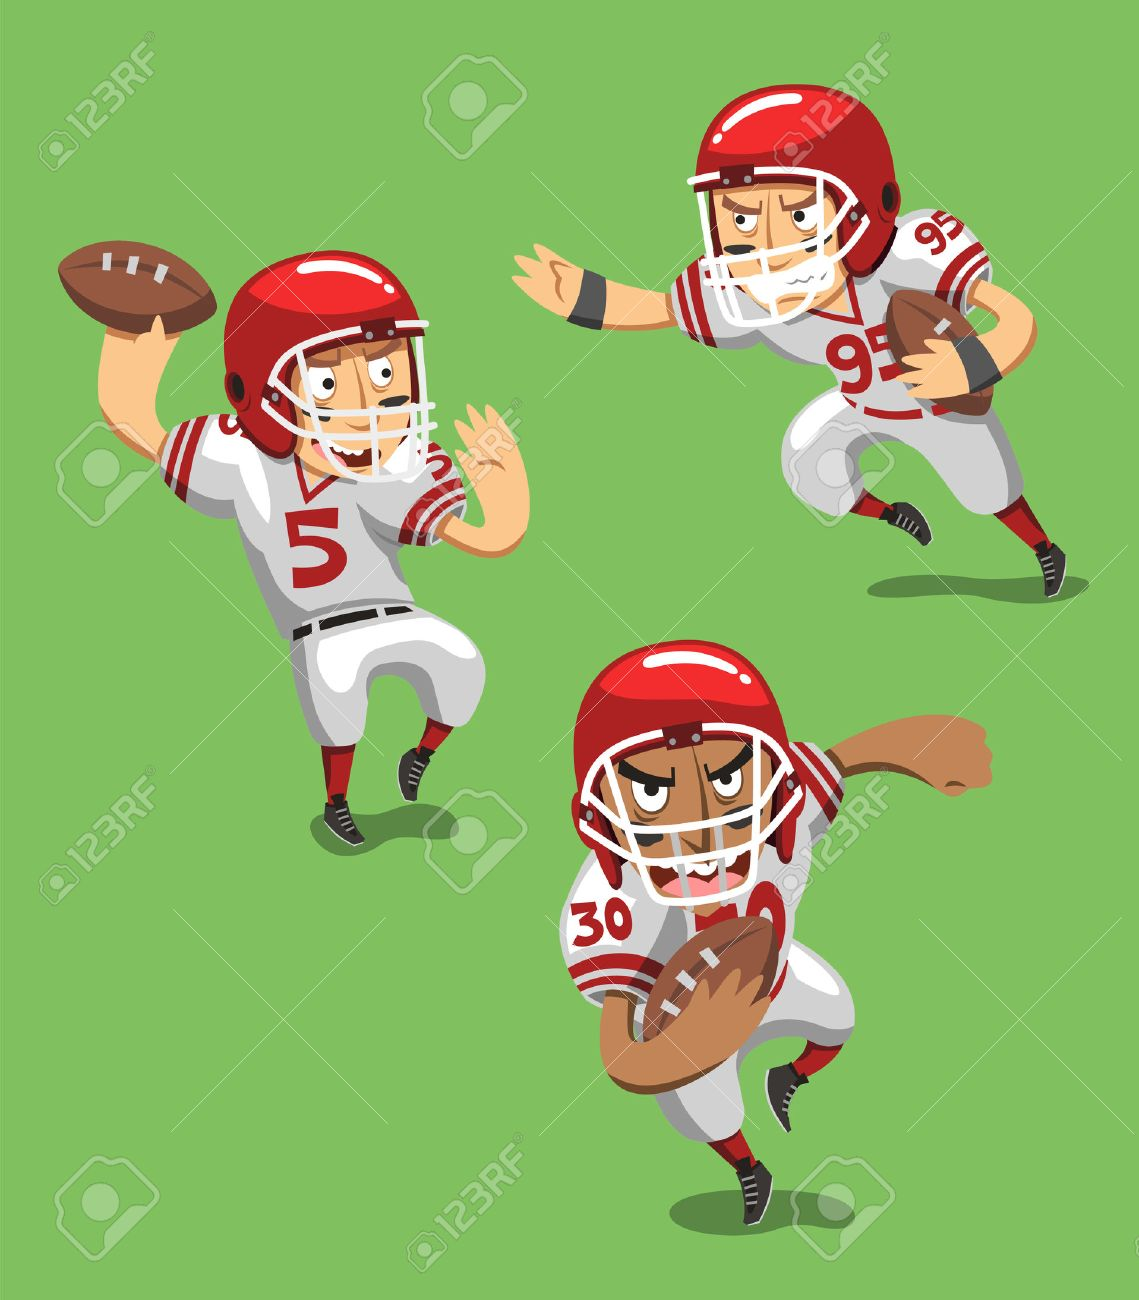 American Football Player With Ball In Field Vector Illustration